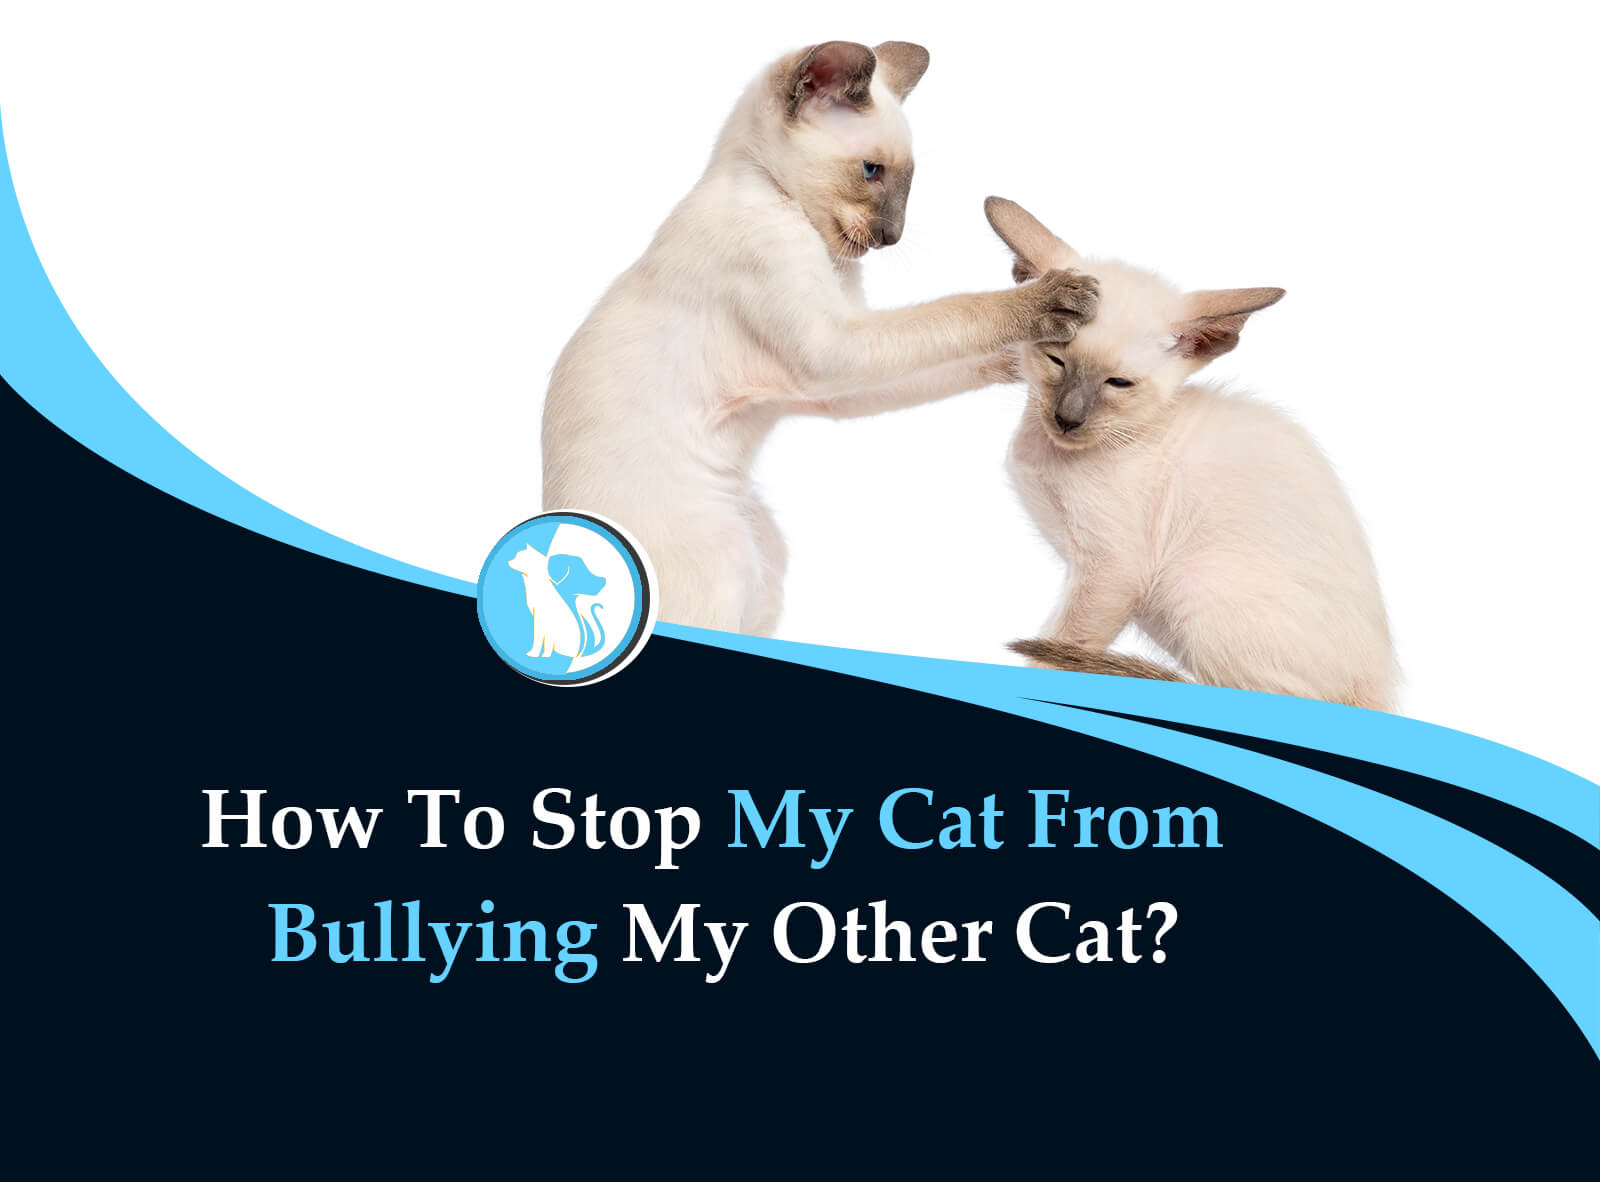 How To Stop My Cat From Bullying Other Cat?